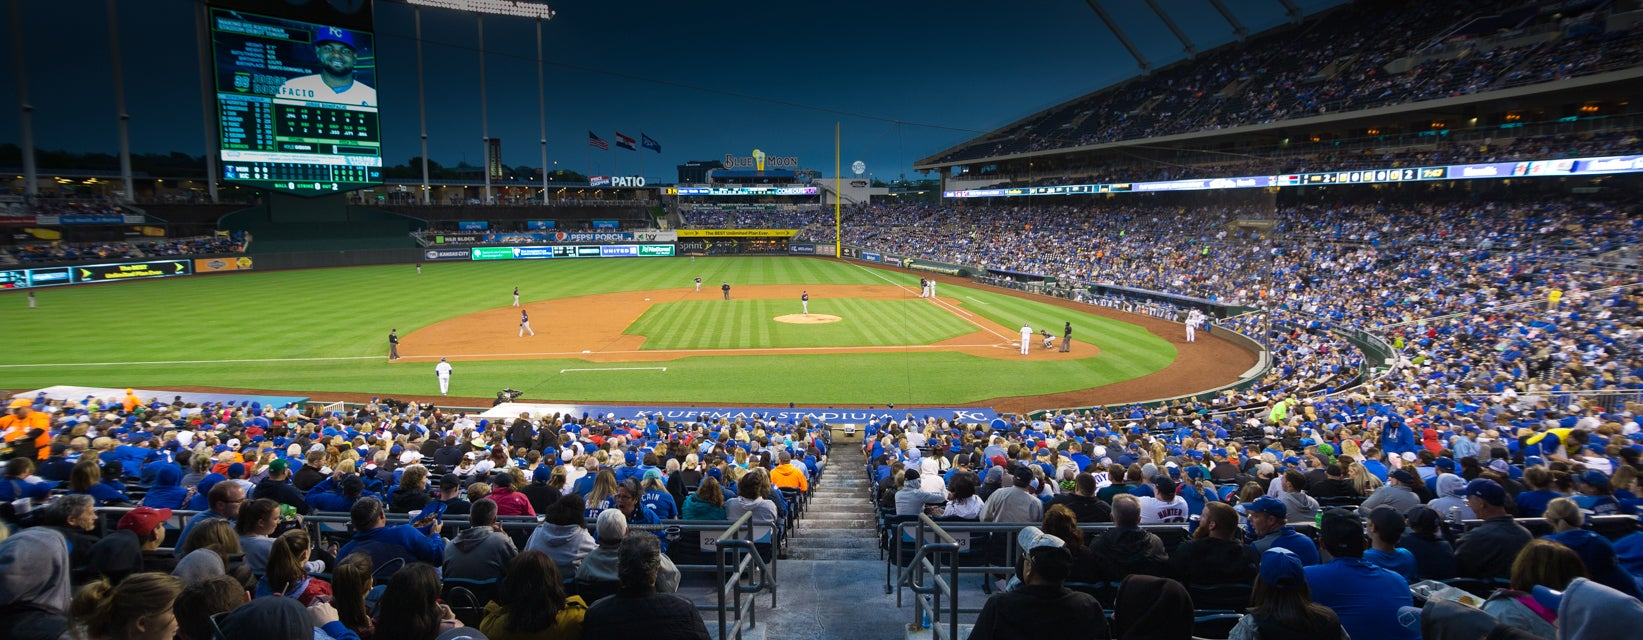 Ticket View From Dugout Plaza 221 At Kauffman Stadium